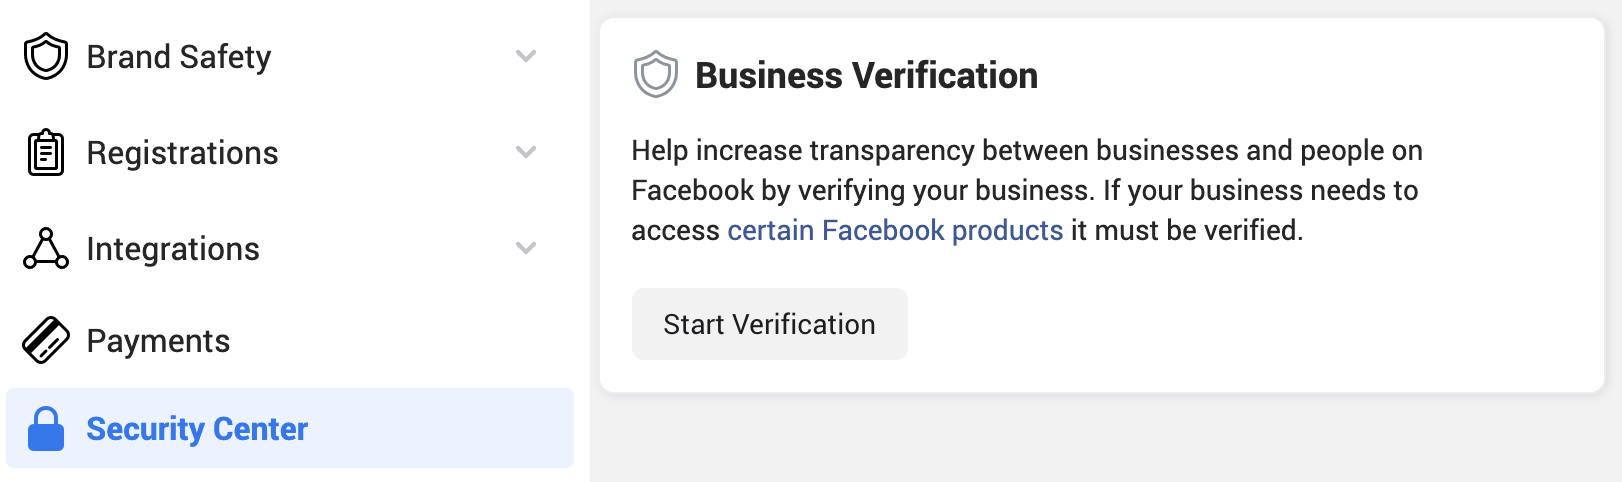 How To Set Up Business Verification In Facebook Business Manager Jon Loomer Digital